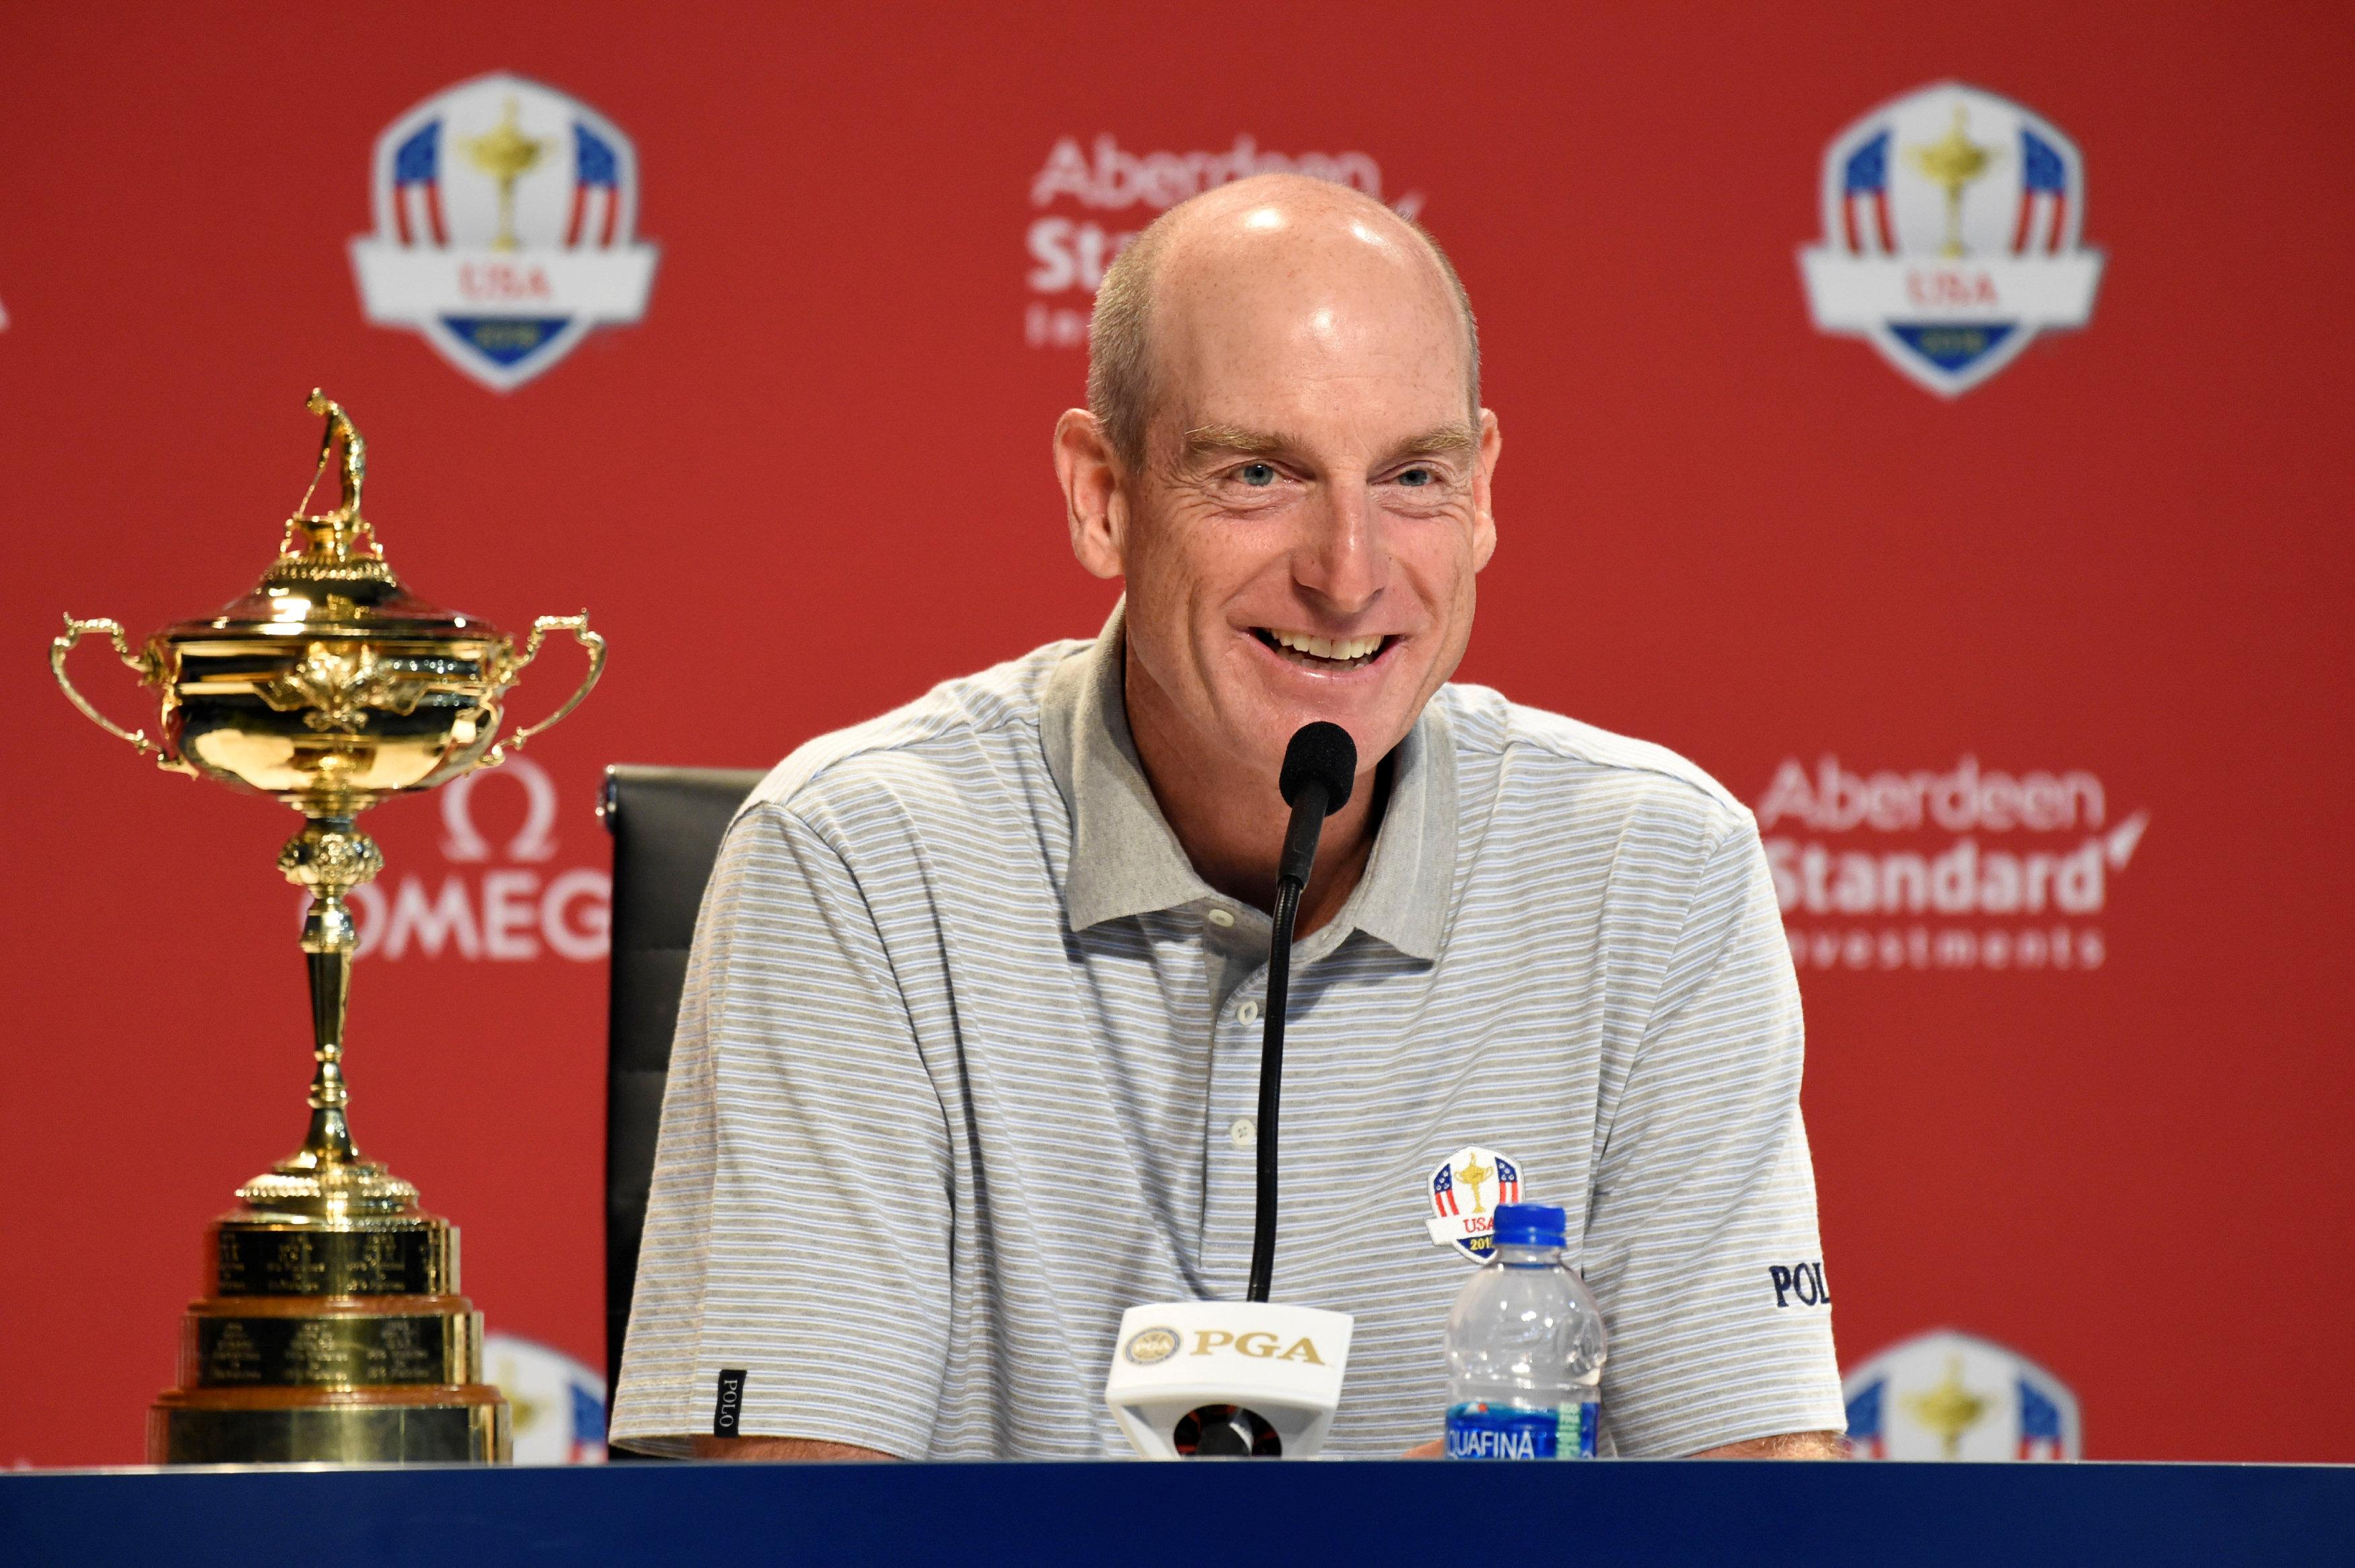 USA captain Jim Furyk was all smiles as he announced his wildcards